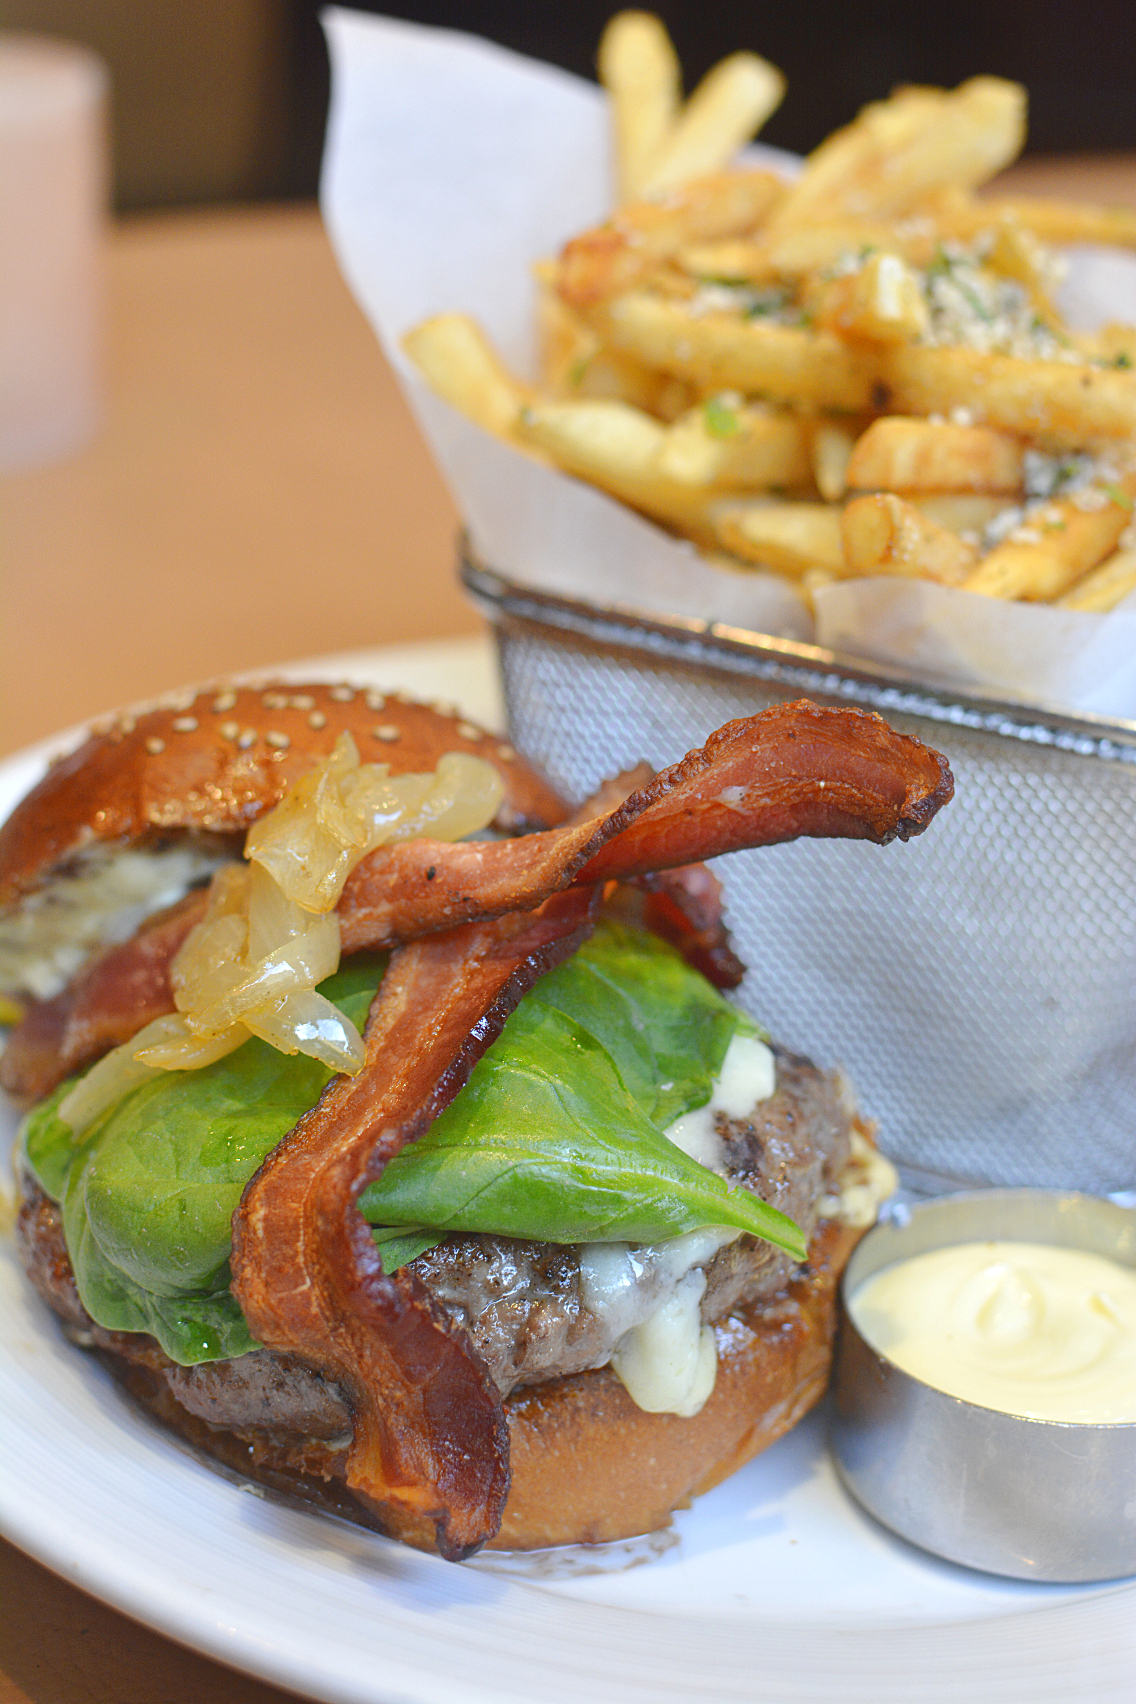 David Burke's Primehouse Chicago 40 DAY Dry-Aged Prime Steak Burker Burger 2